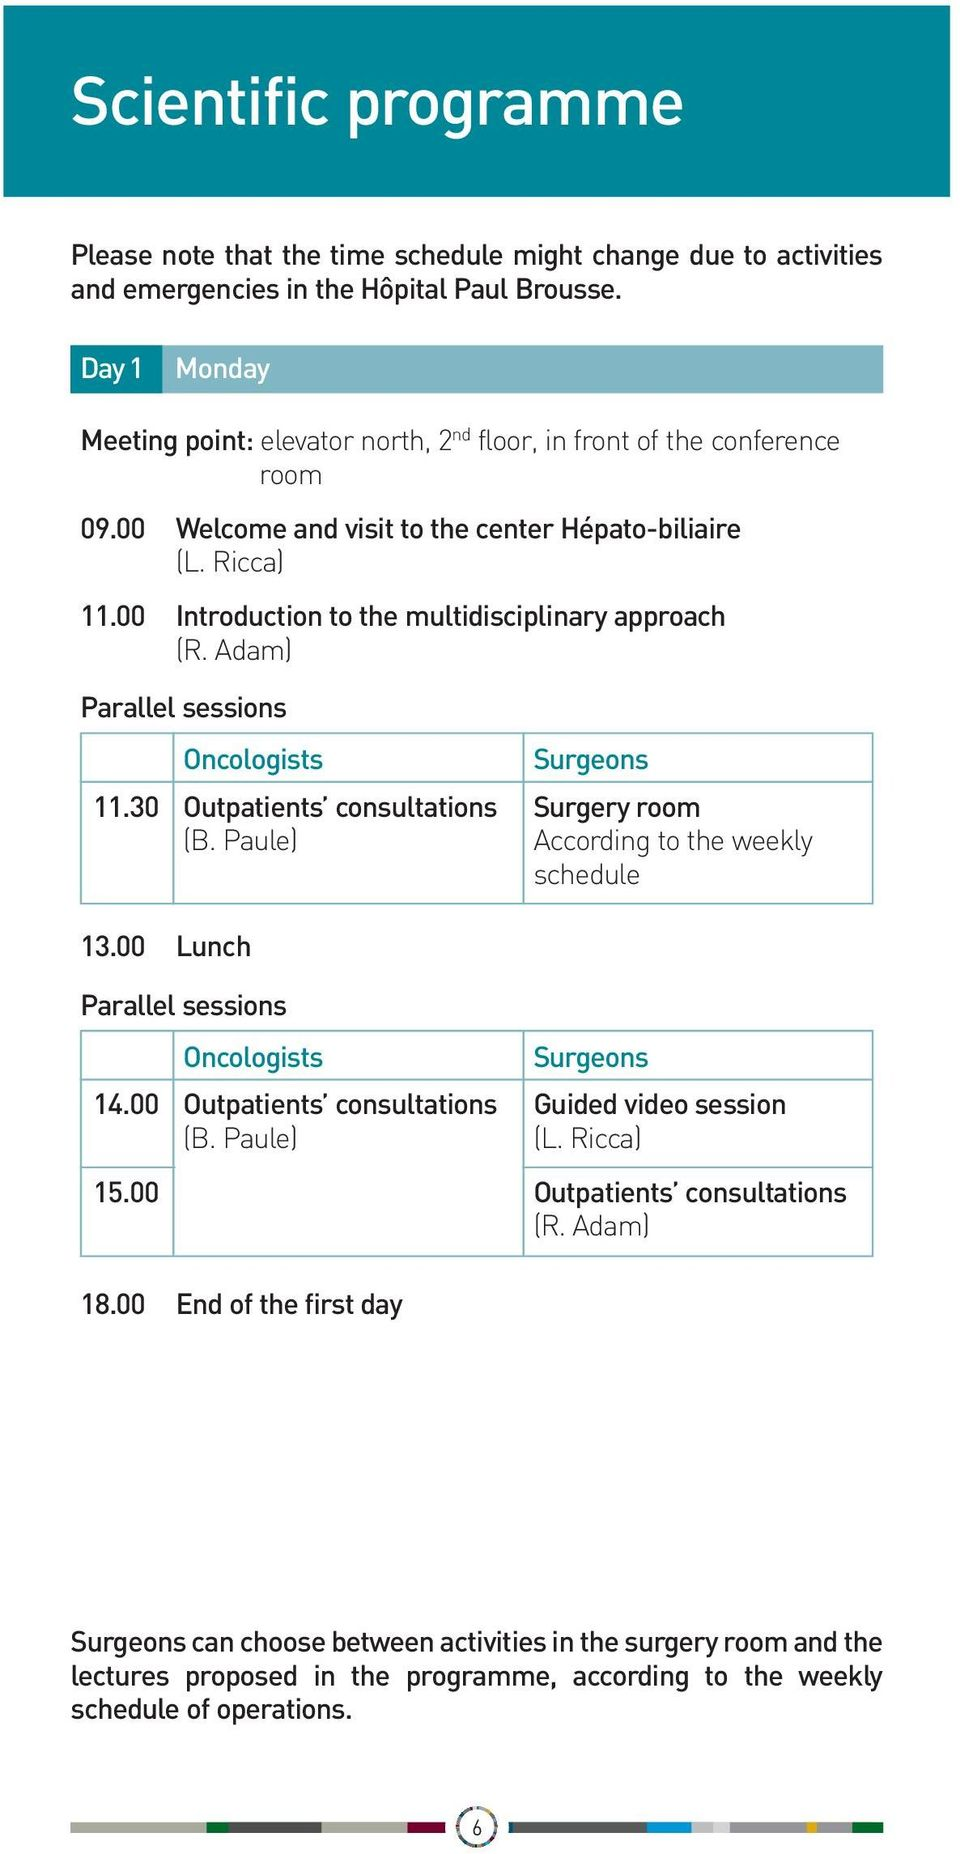 00 Introduction to the multidisciplinary approach (R. Adam) Parallel sessions 10.00 11.30 Oncologists Outpatients consultations (B. Paule) Surgeons Surgery room According to the weekly schedule 13.